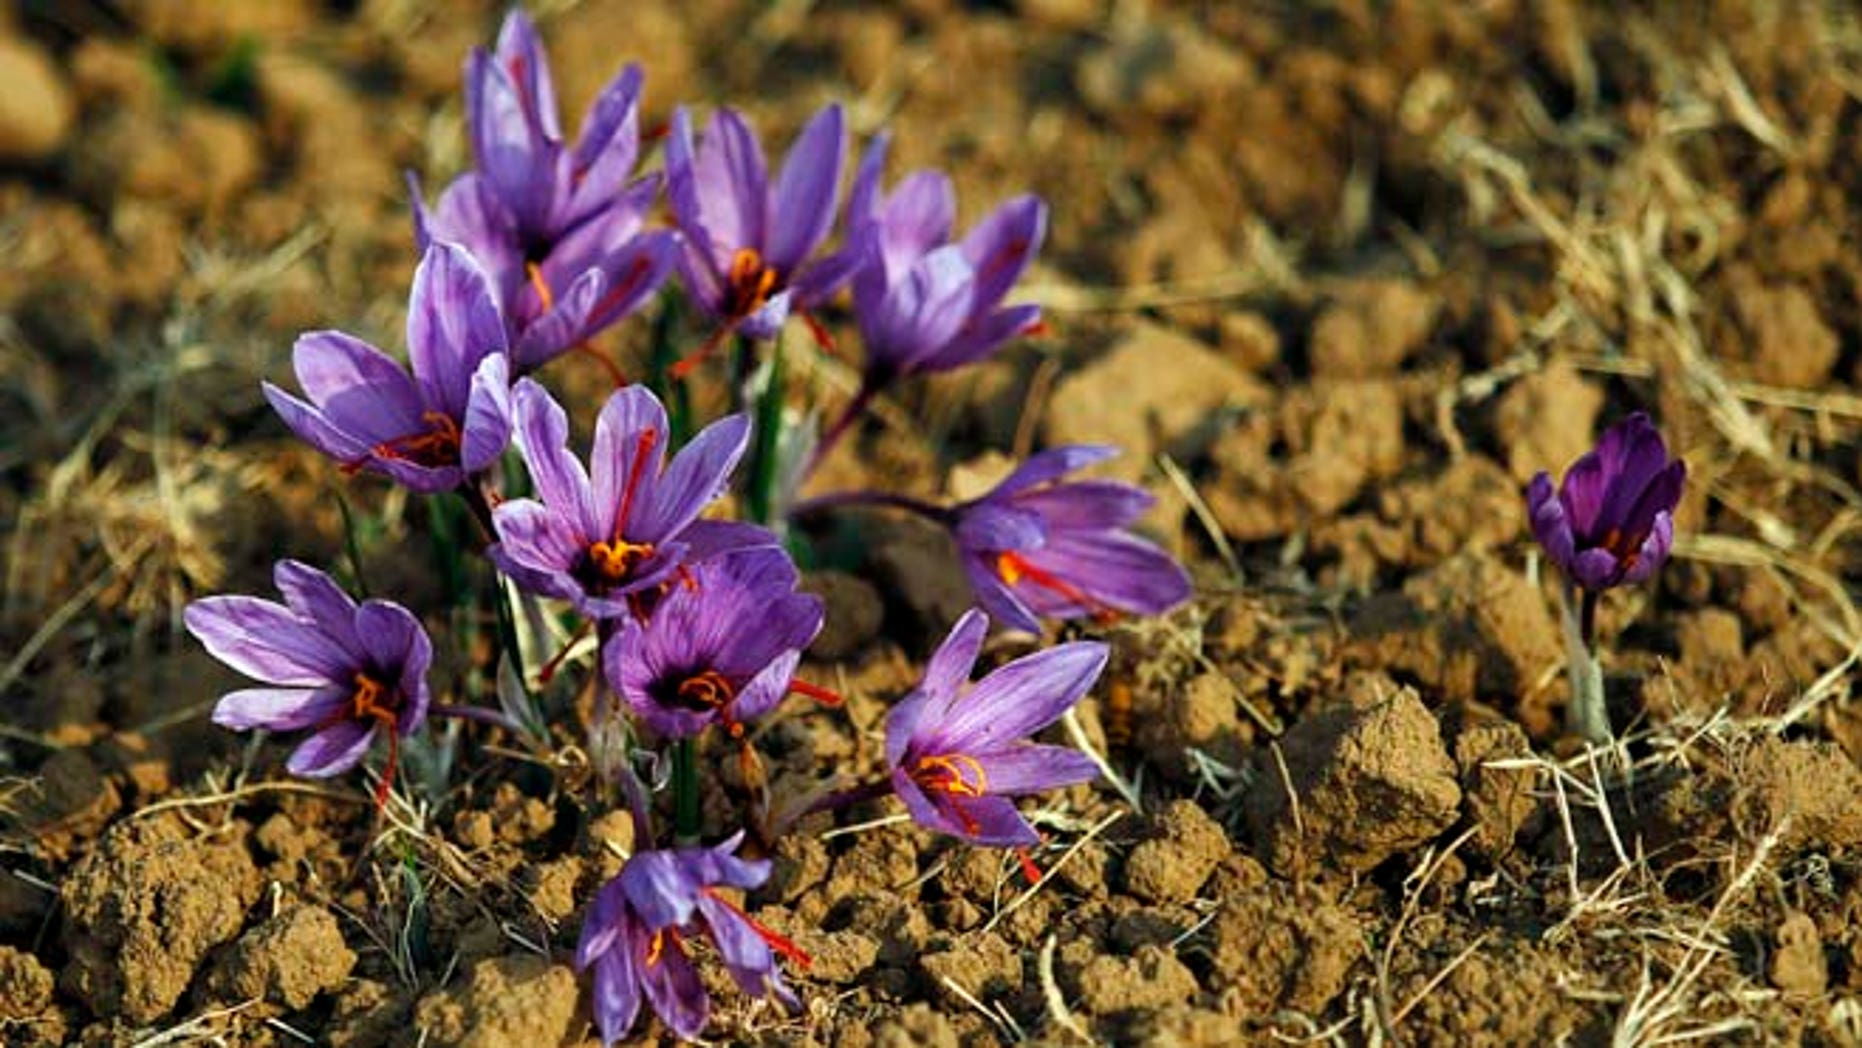 Nov. 1, 2012: Saffron flowers are seen in full bloom at a field in Pampore, 9 miles south of Srinagar.